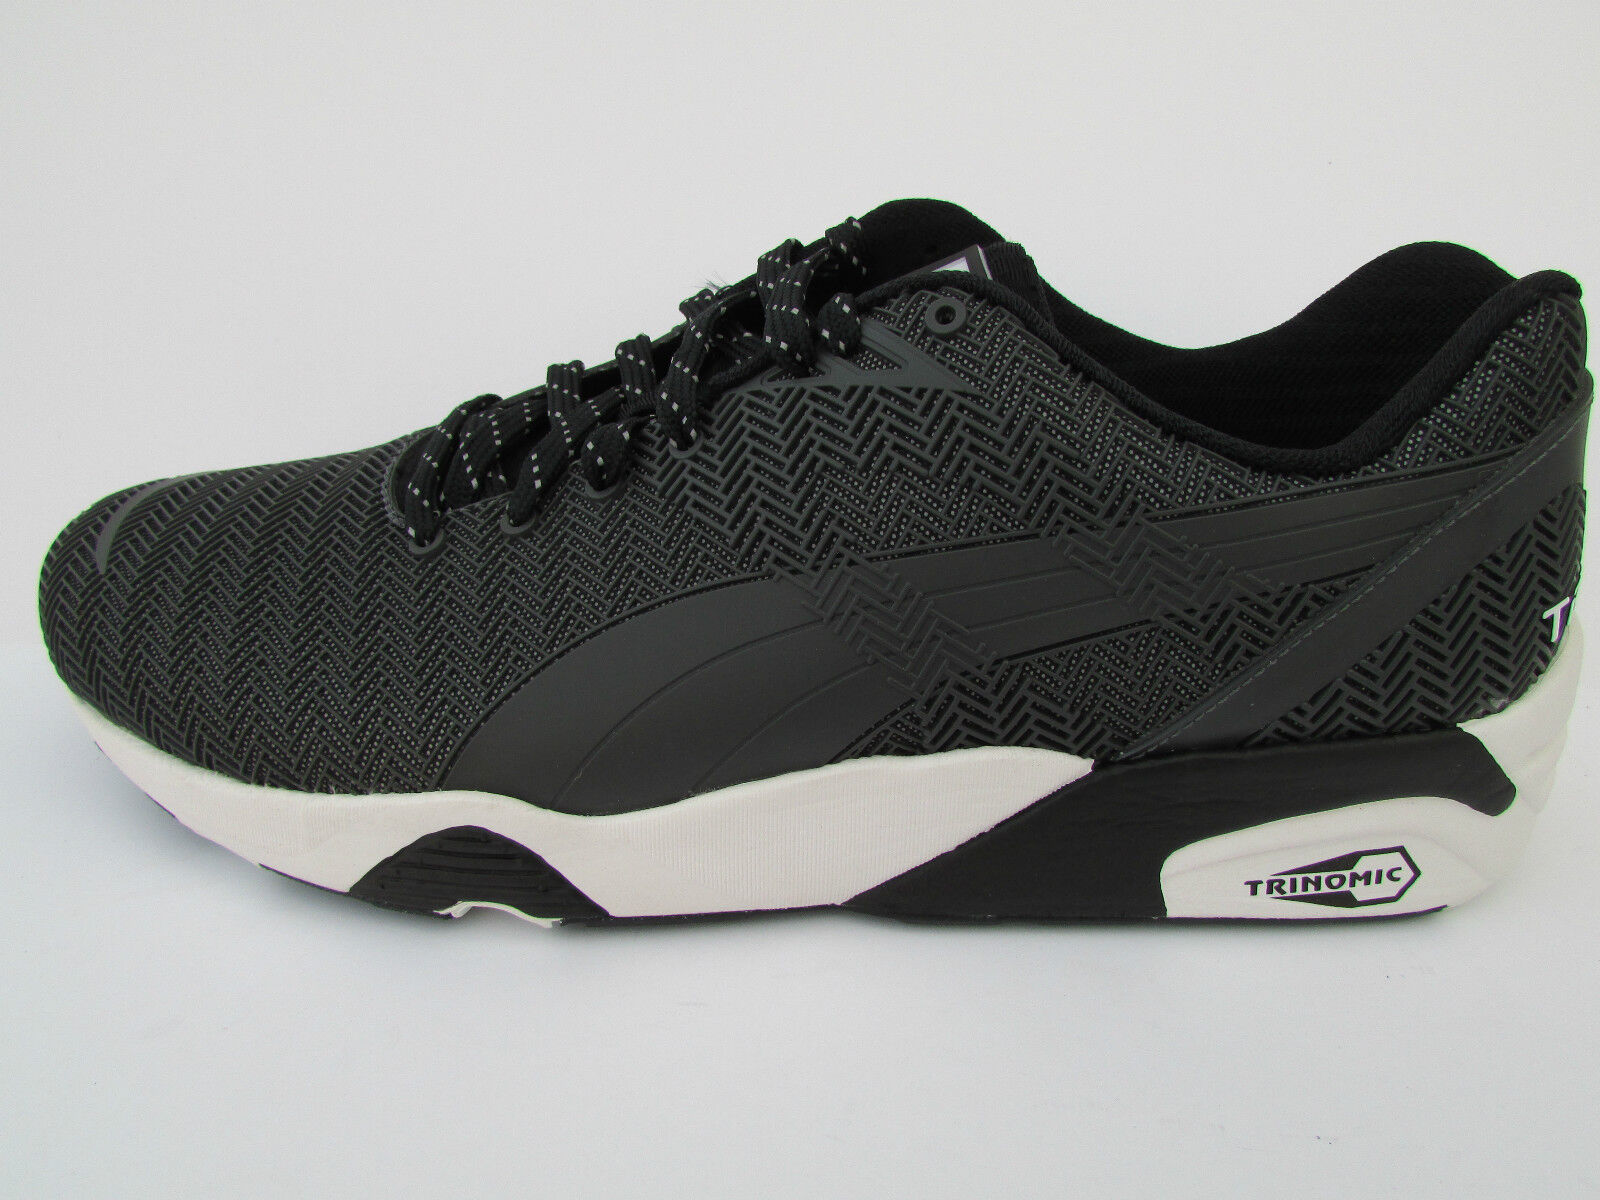 Puma Uomo r698 r698 r698 legato tpu kurim 944e8e